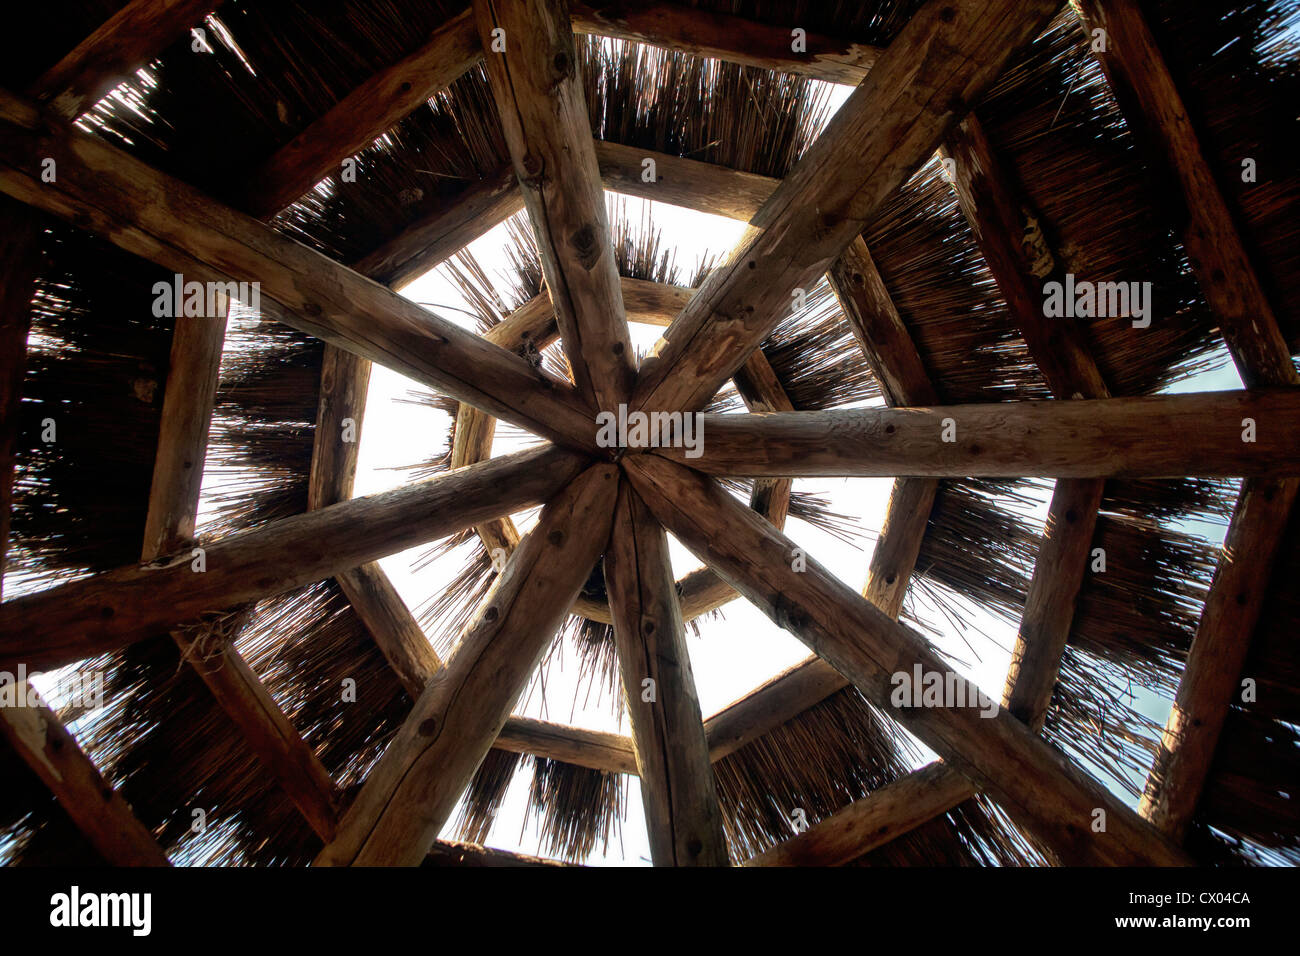 Thatch roof at the Kansas City Zoo - Stock Image